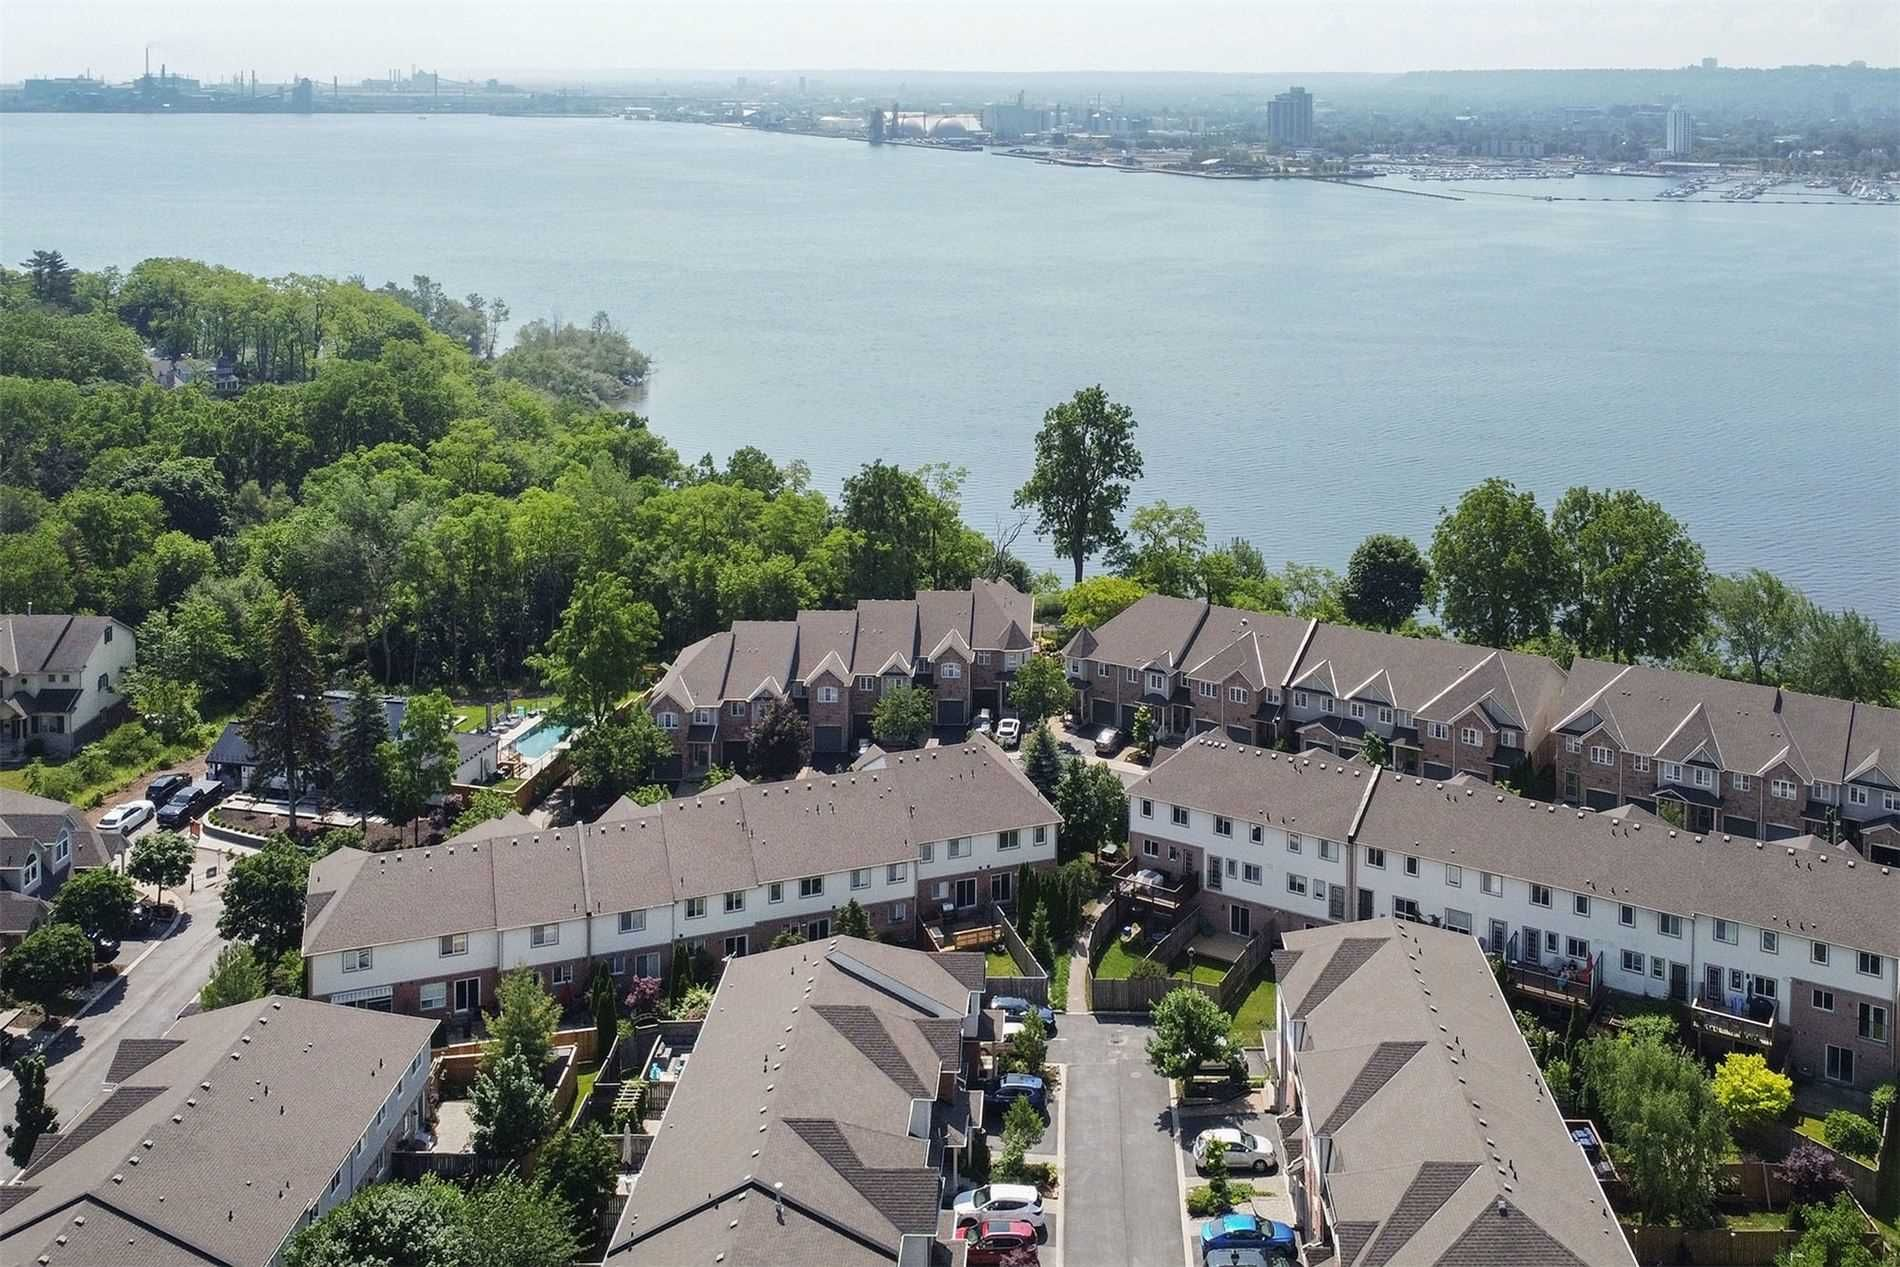 710 Spring Gardens Rd, unit 82 for sale in Toronto - image #2